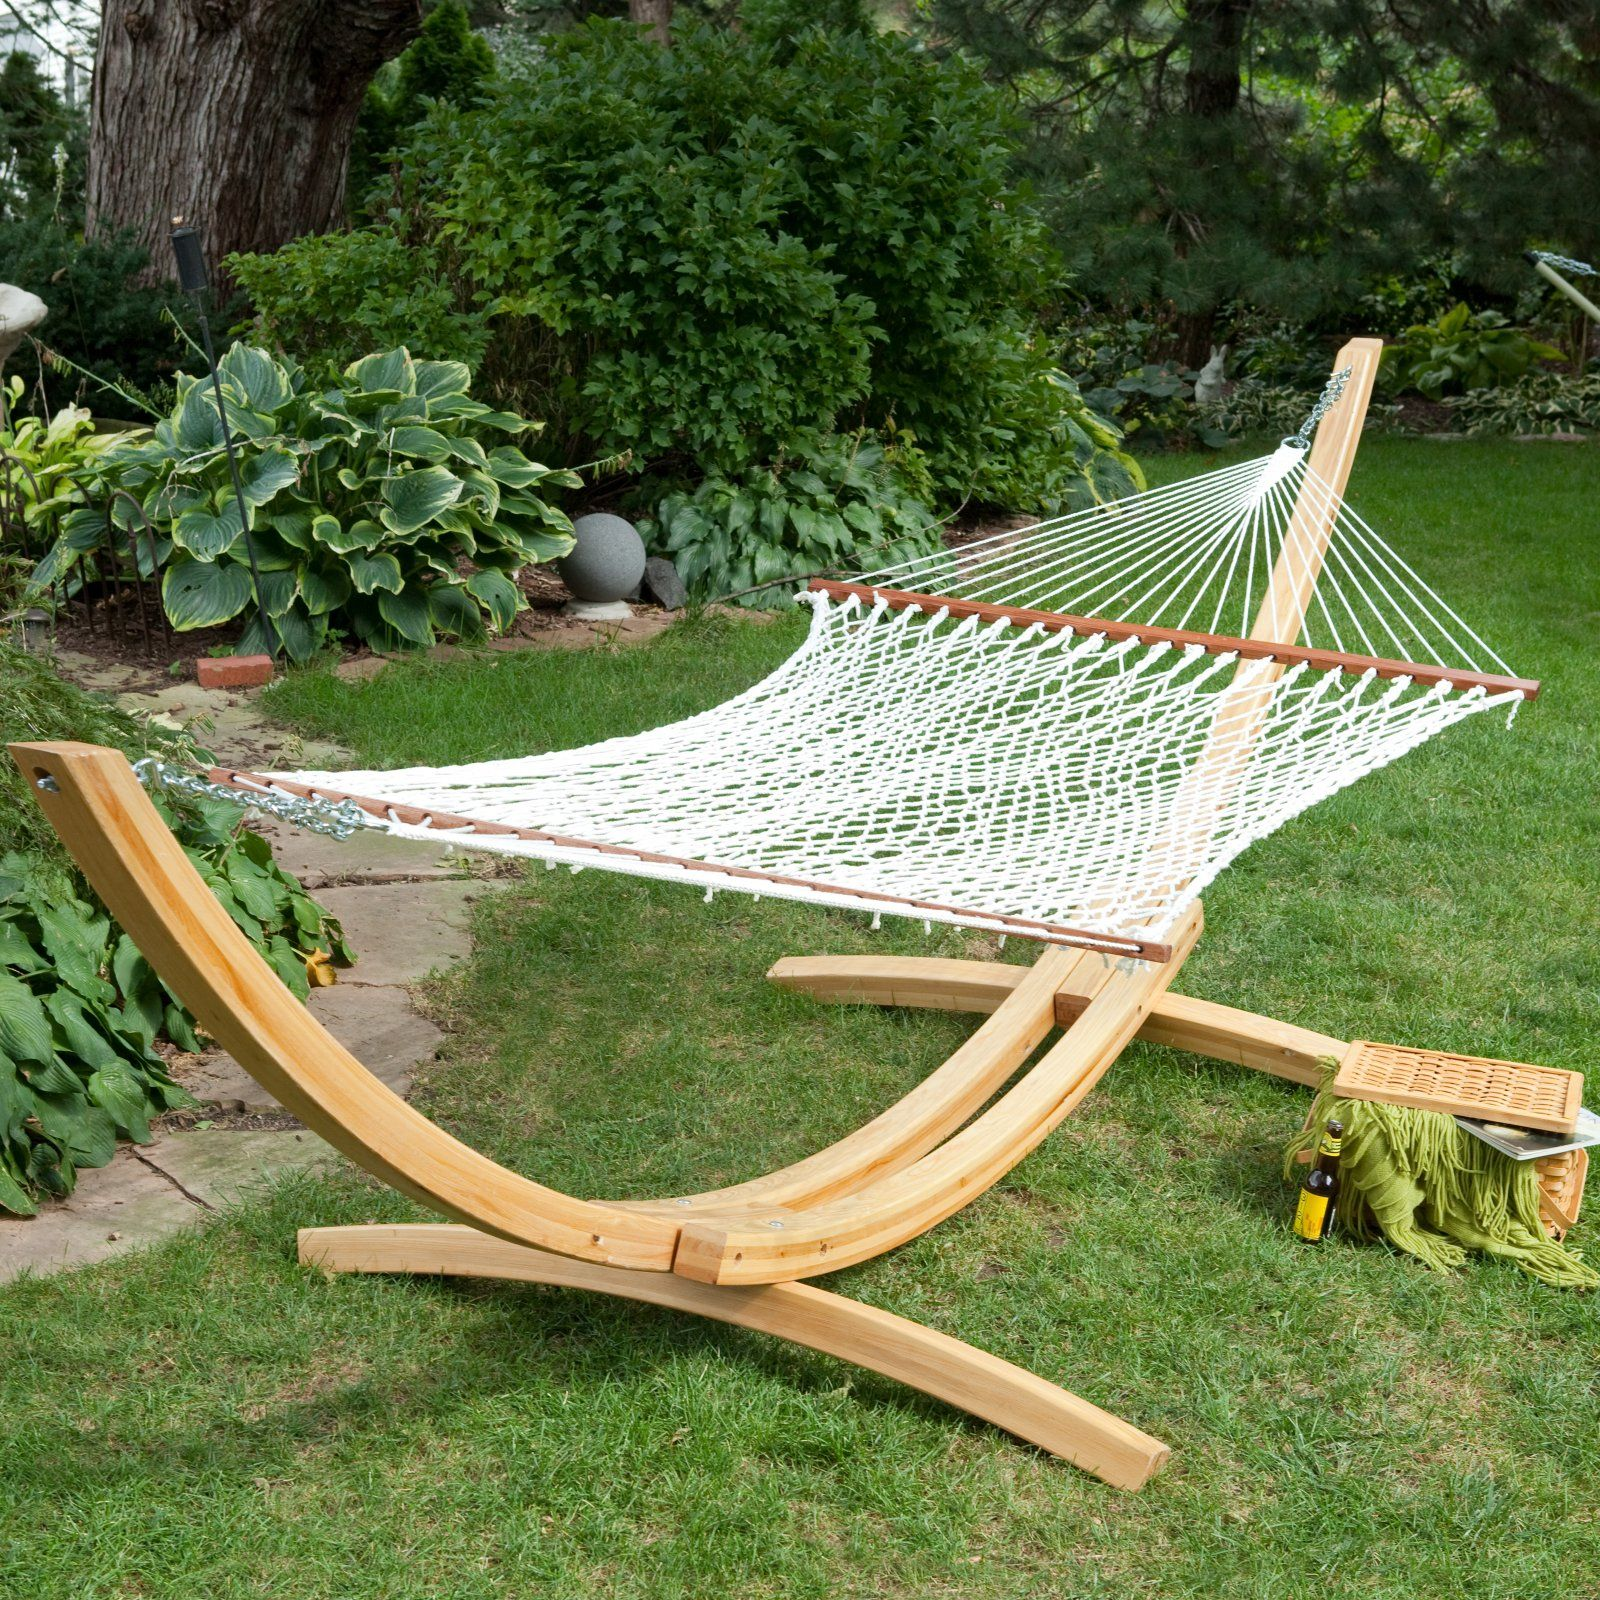 island bay xl rope hammock with cypress wood arc stand island bay xl rope hammock with cypress wood arc stand   for the      rh   pinterest